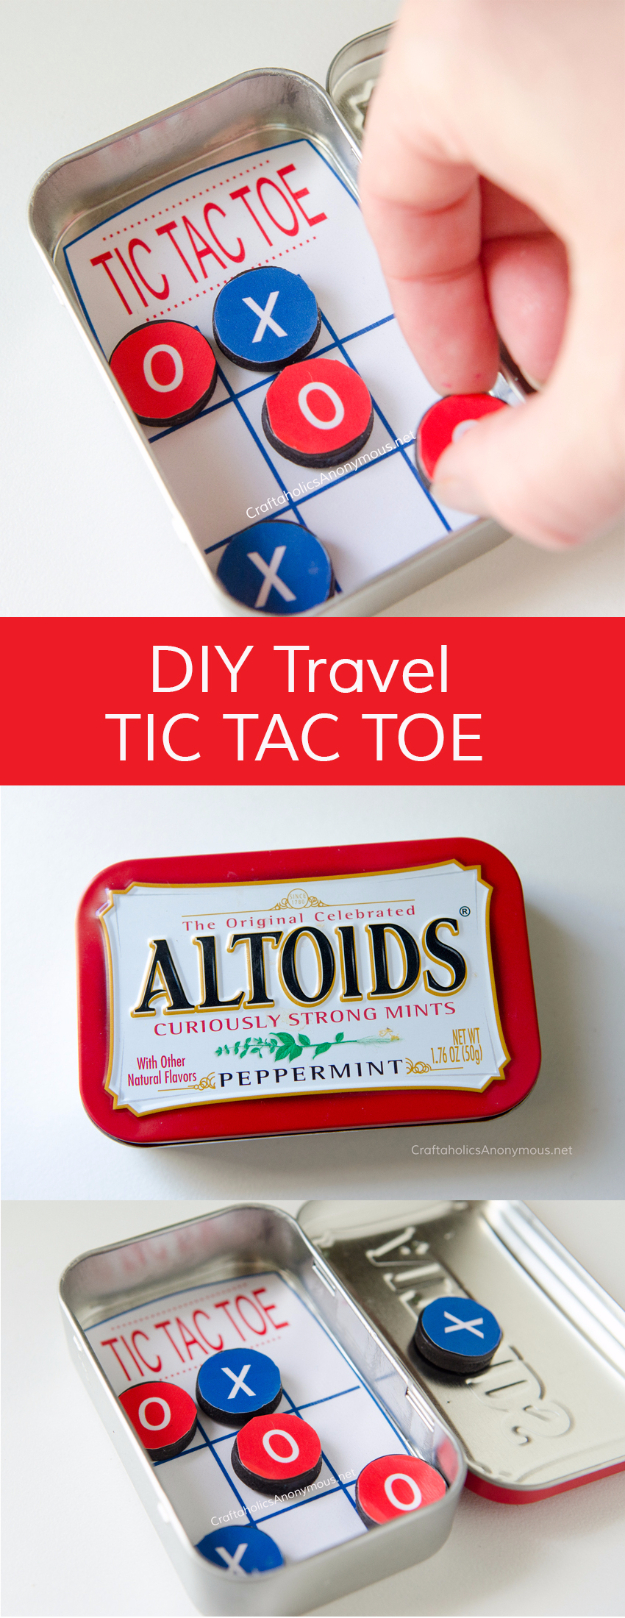 Easy DIY Projects - DIY Pocket Tic Tac Toe Game - Easy DIY Crafts and Projects - Simple Craft Ideas for Beginners, Cool Crafts To Make and Sell, Simple Home Decor, Fast DIY Gifts, Cheap and Quick Project Tutorials #diy #crafts #easycrafts